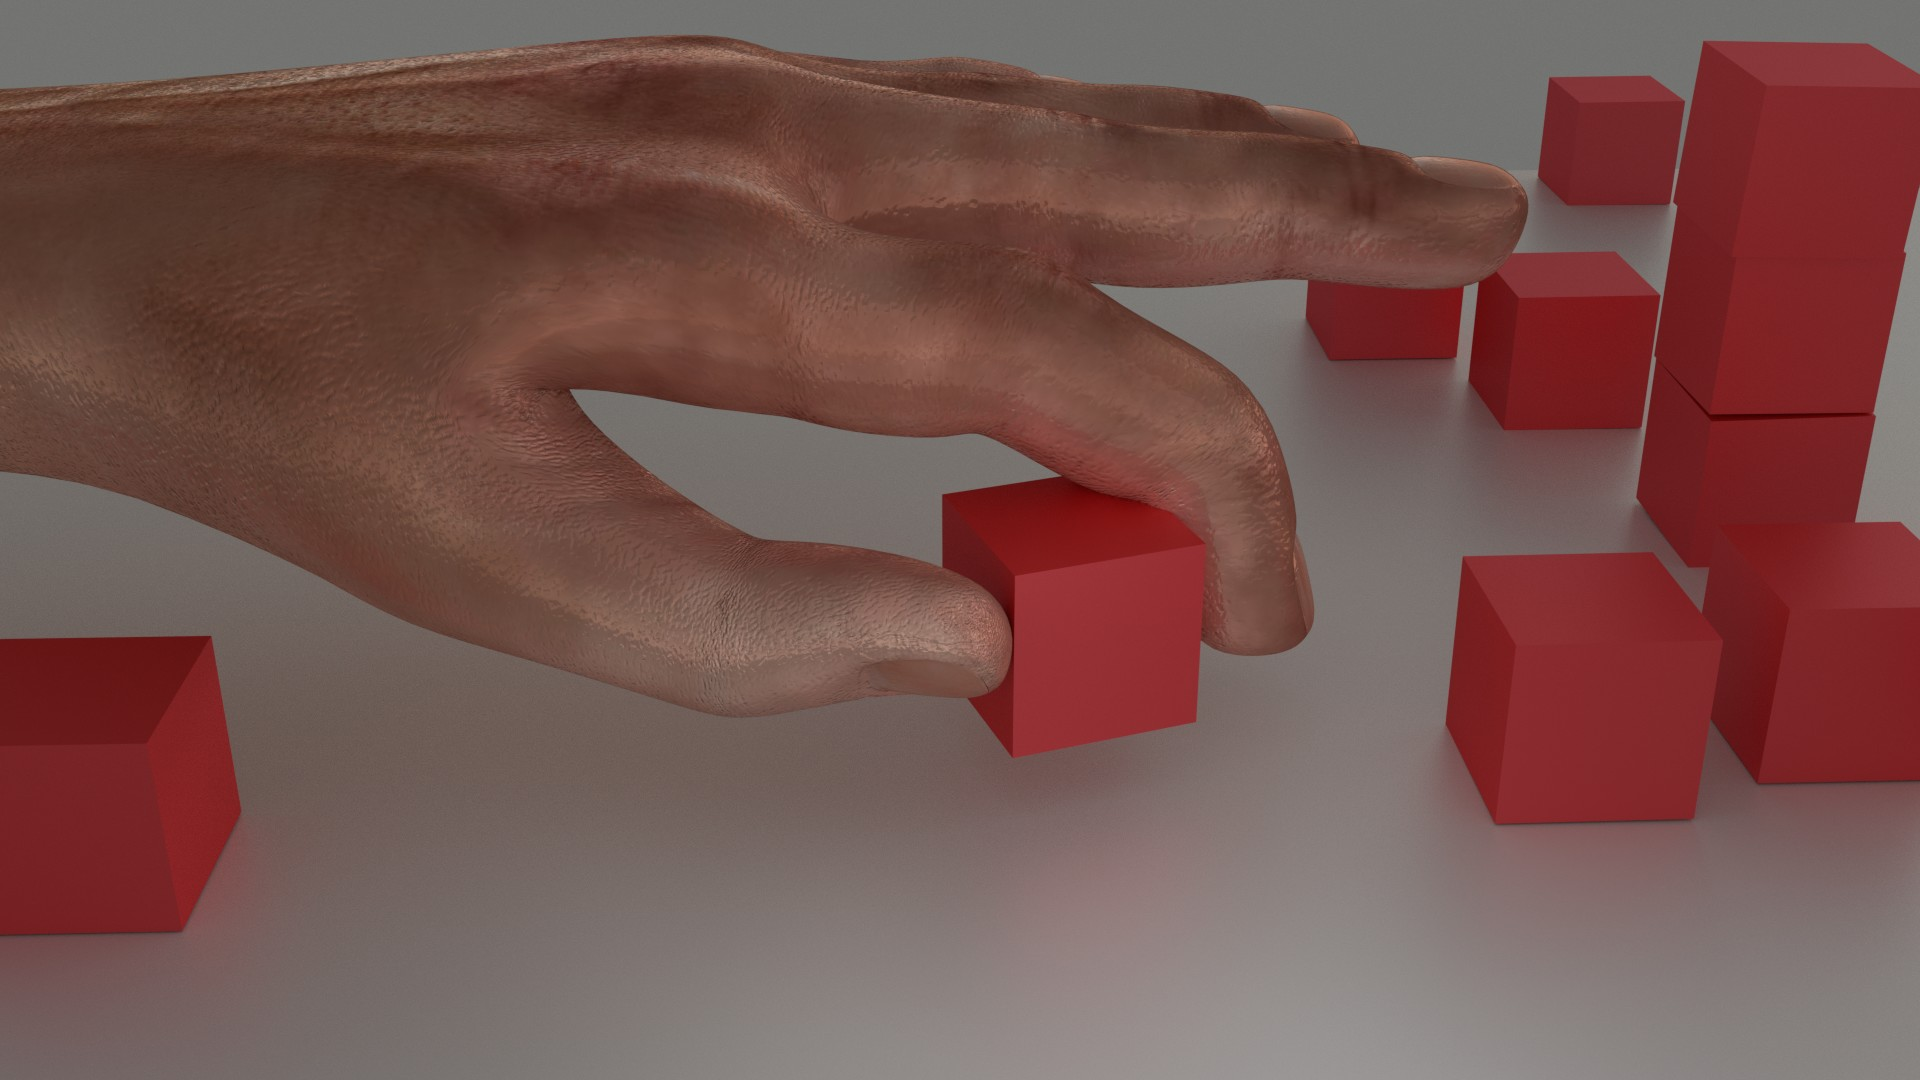 Blender: Place Object on Surface Add-On